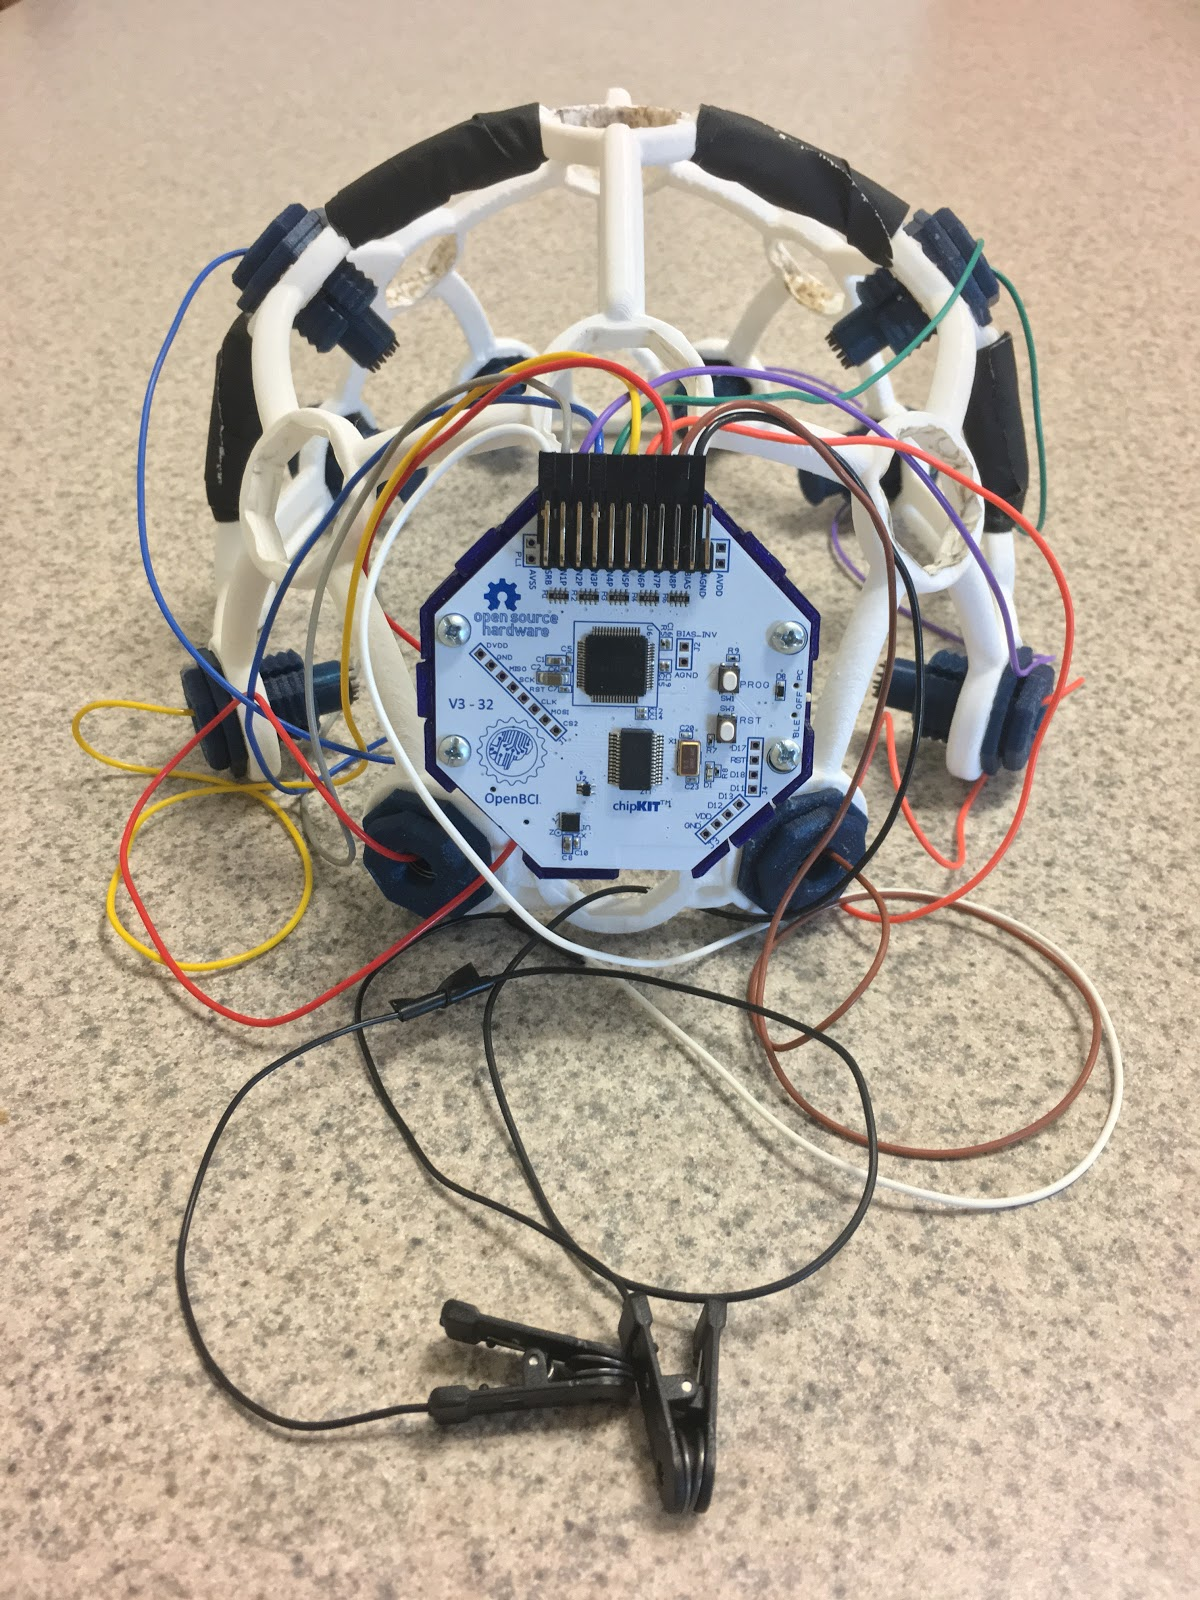 Disease Diagnostics Take Top Honors Of Debut Biomedical Engineering Innovative Wiring The Image Shows A White Plastic Device That Could Fit Over Patients Head With Many